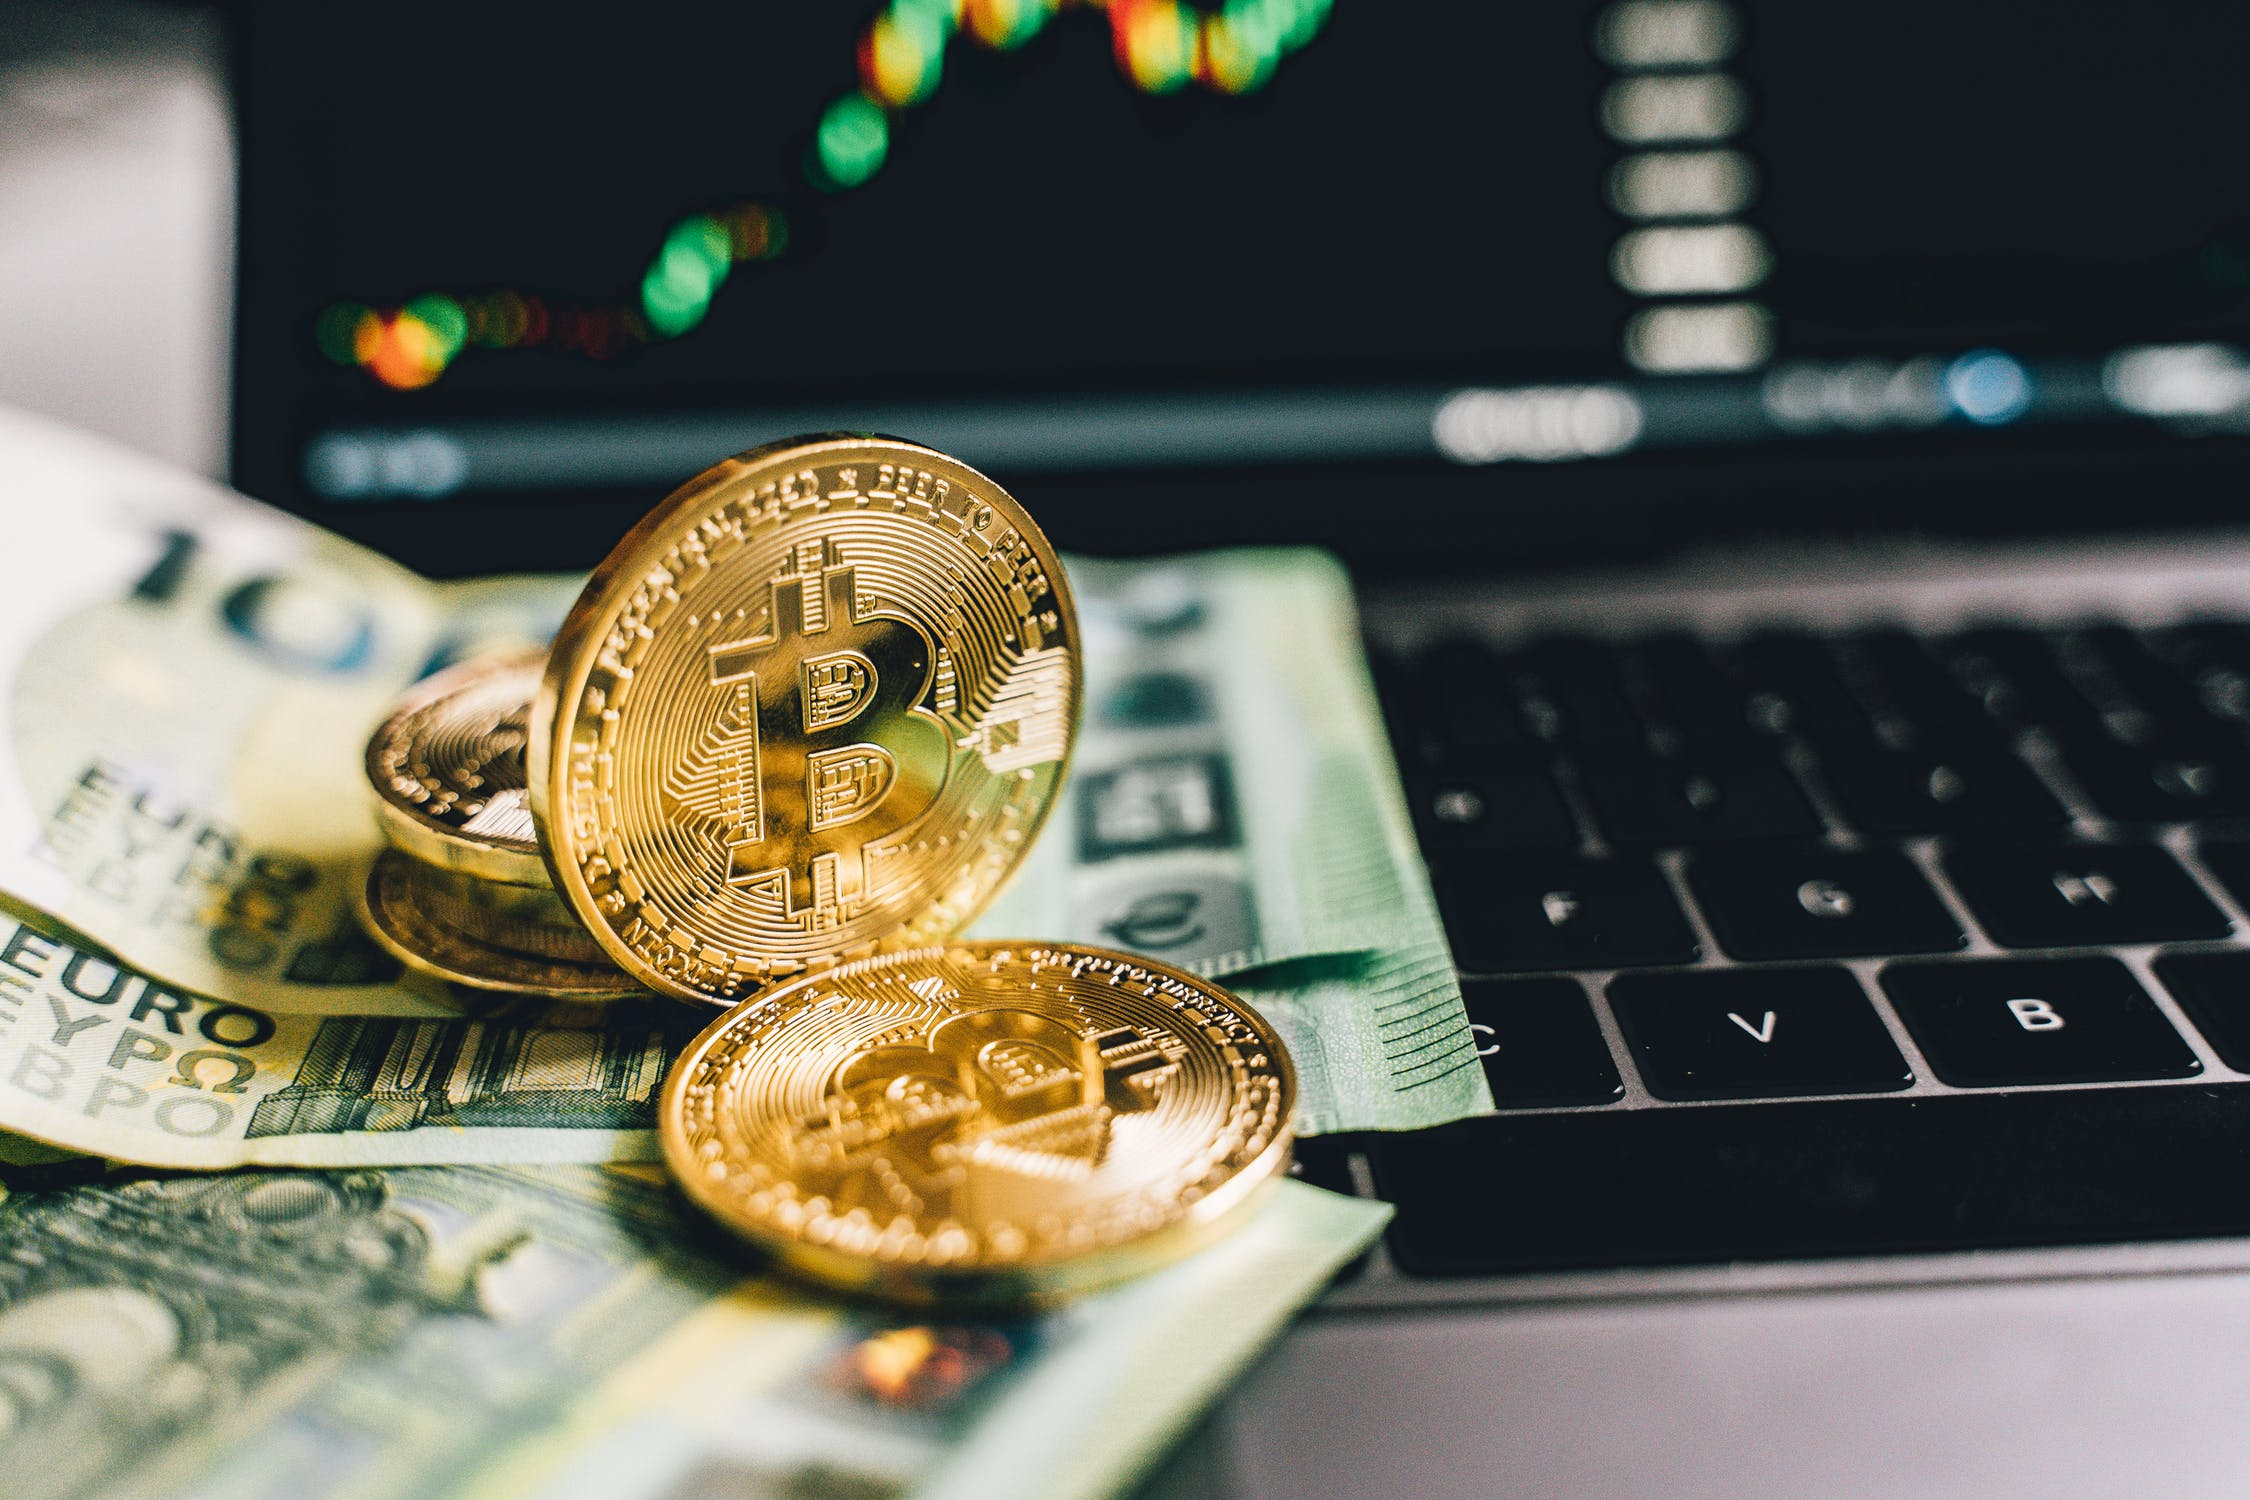 Why are people compromising traditional and physical currencies with bitcoin